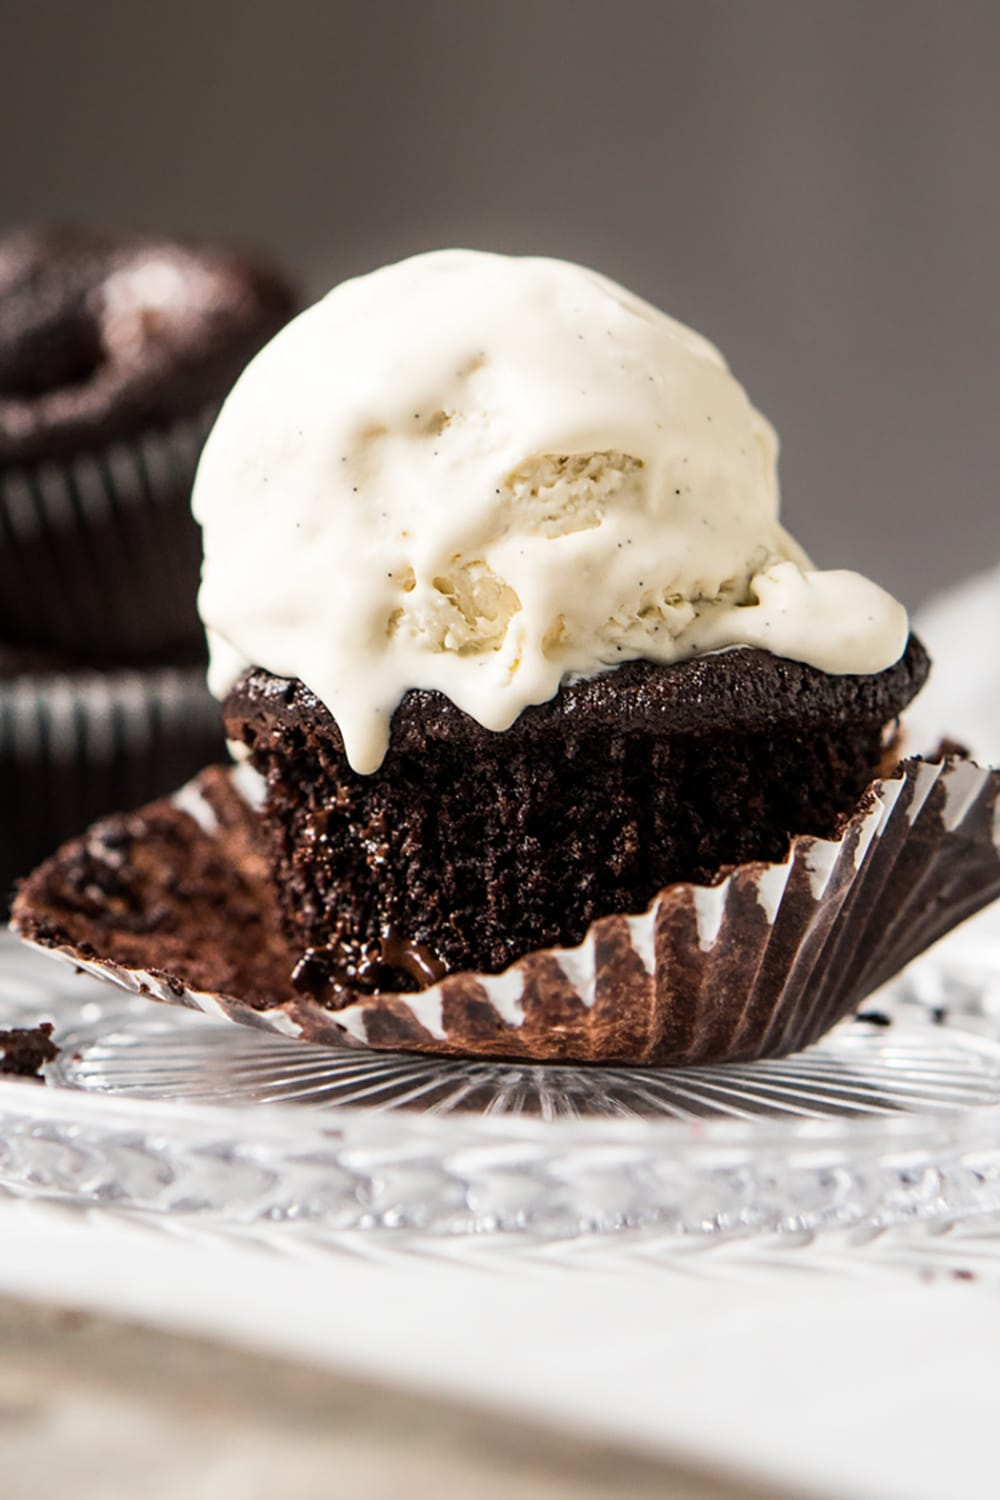 Low Carb chocolate muffin with a scoop of vanilla ice cream on top